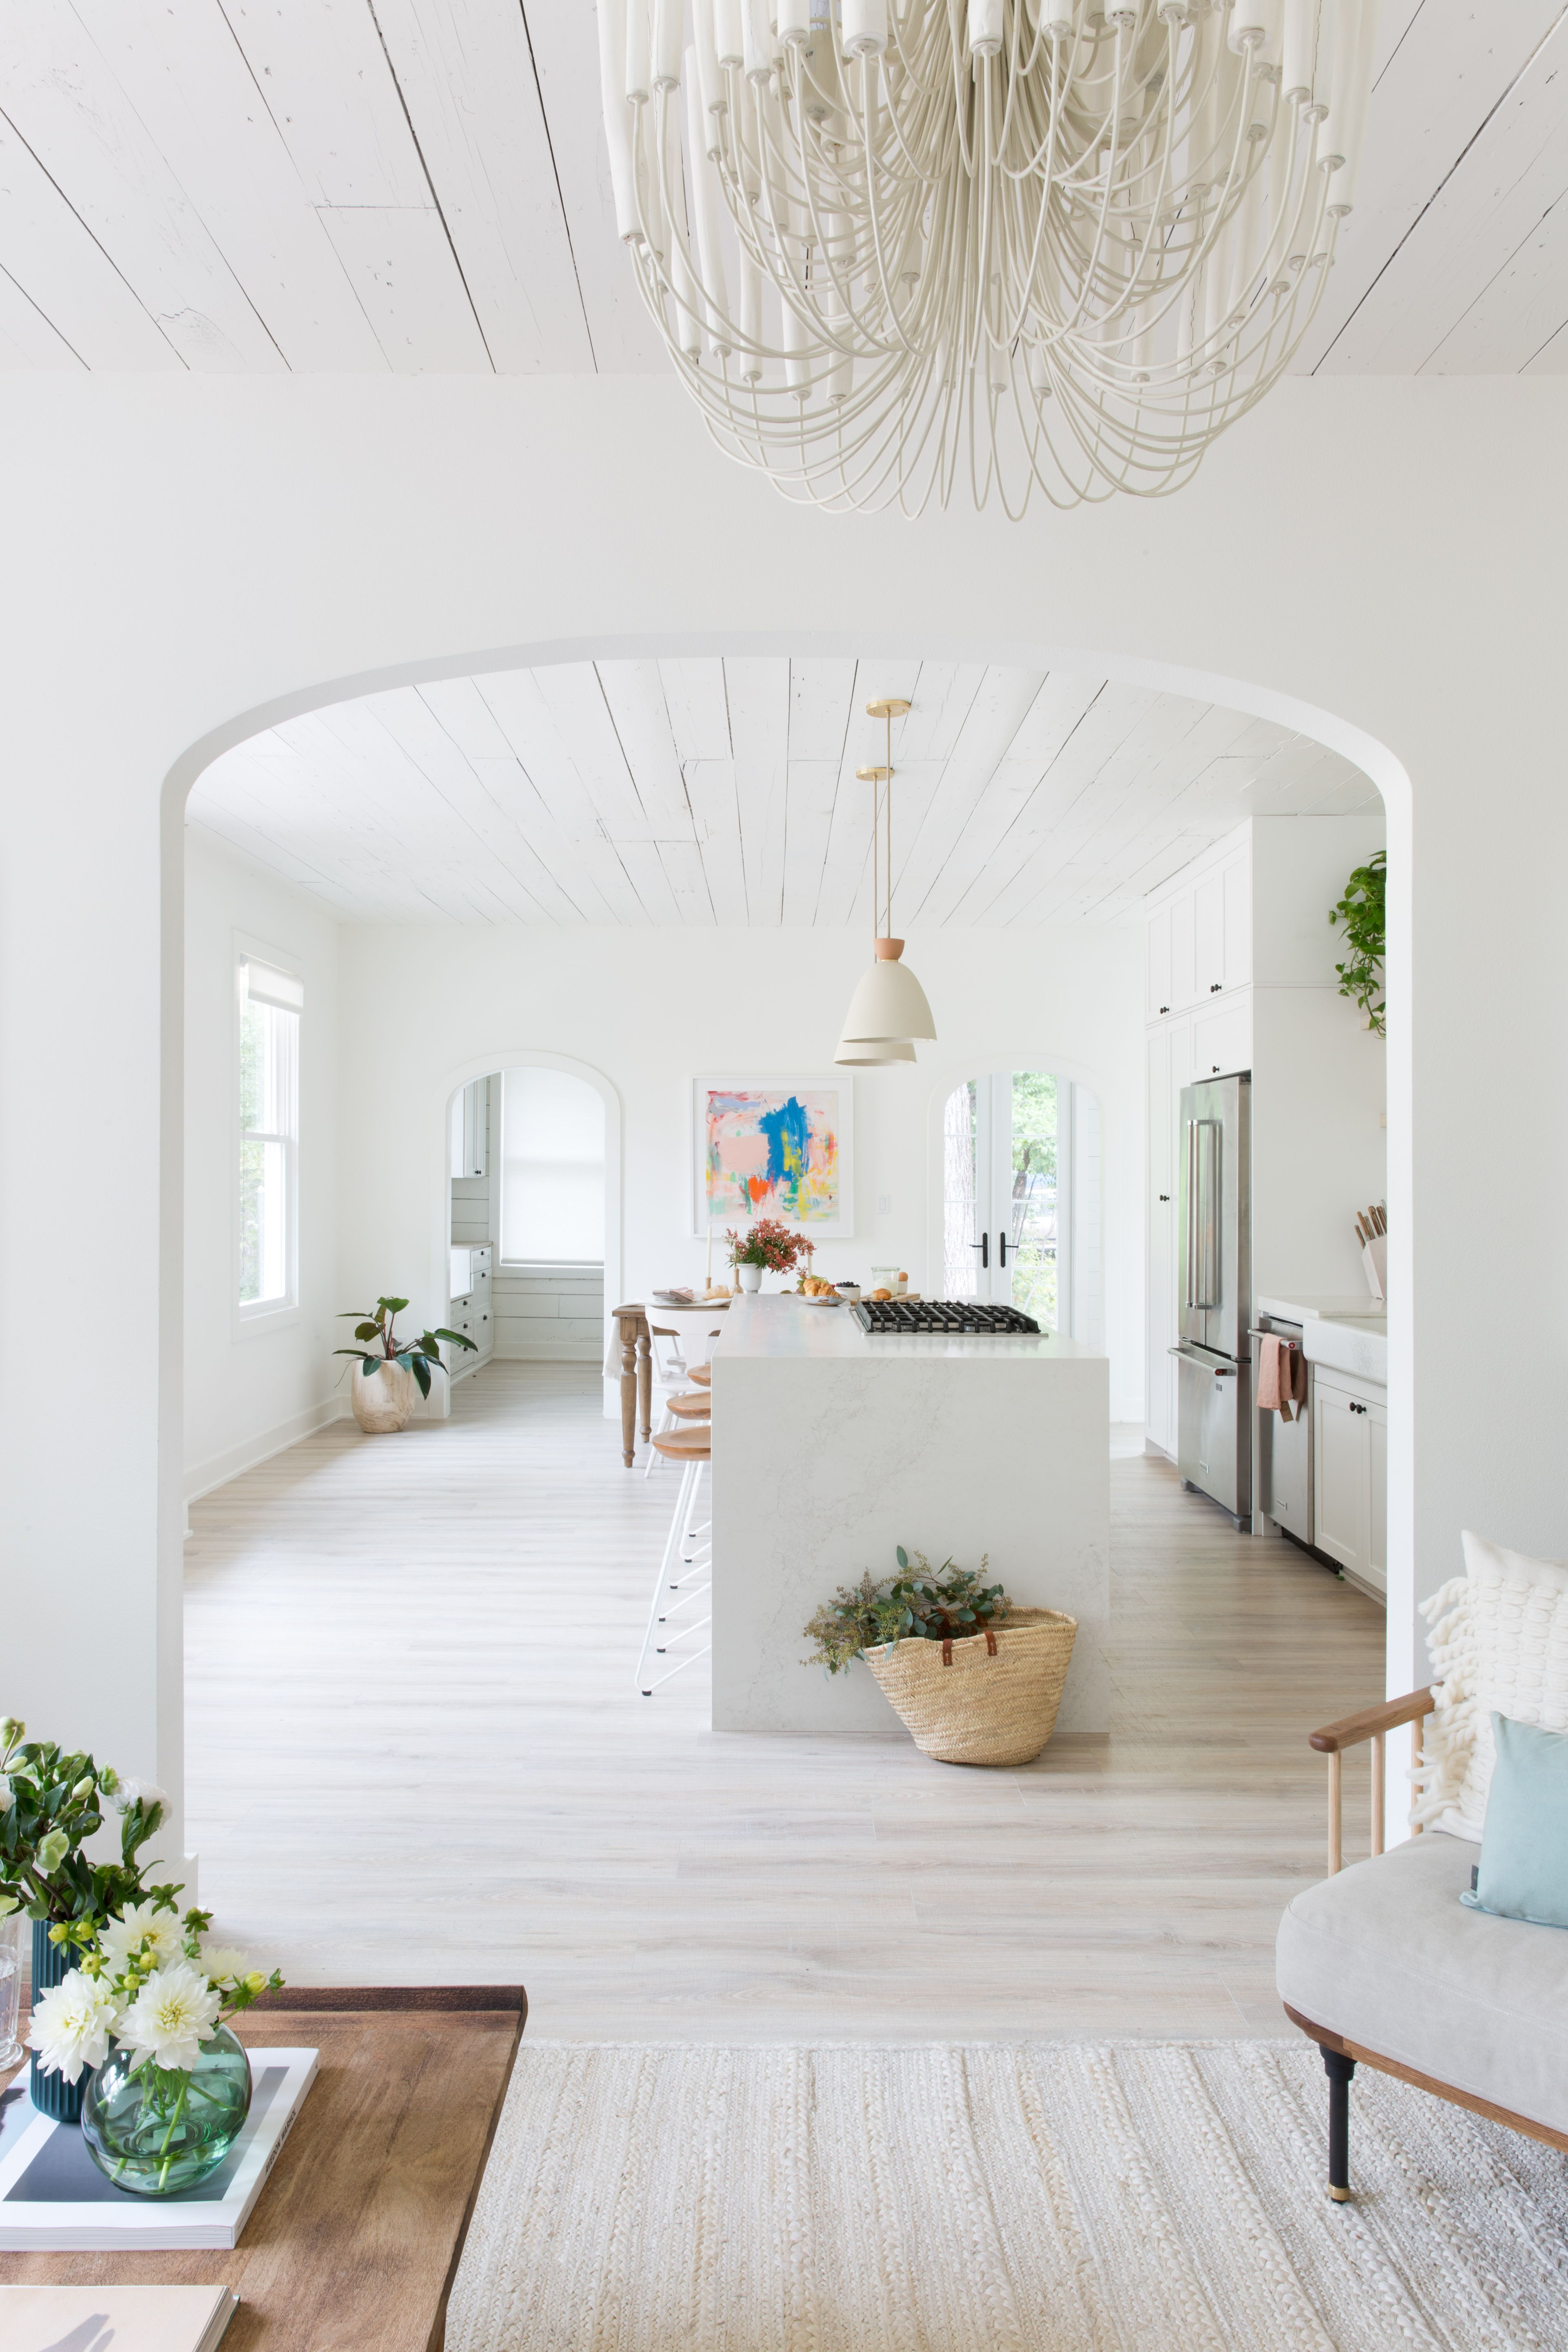 Modernes bungalow innenarchitektur wohnzimmer this whiteonwhite austin houseturnedworkstudio is an